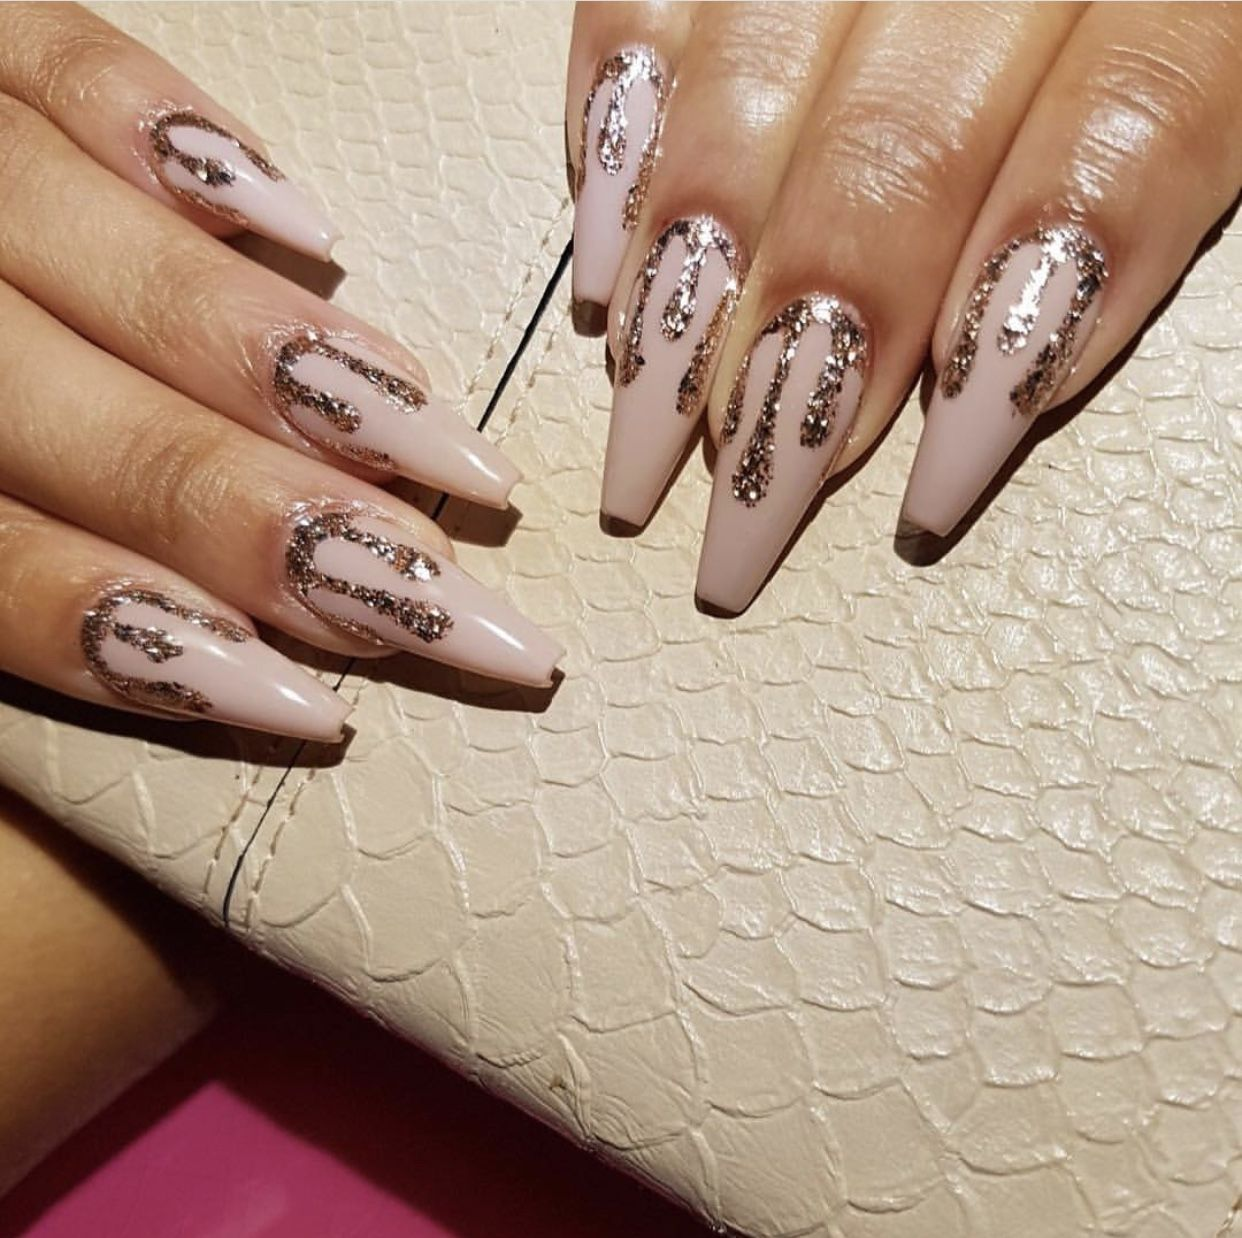 Pin by Brianna Nicole on Projects to try | Pinterest | Diamond nails ...